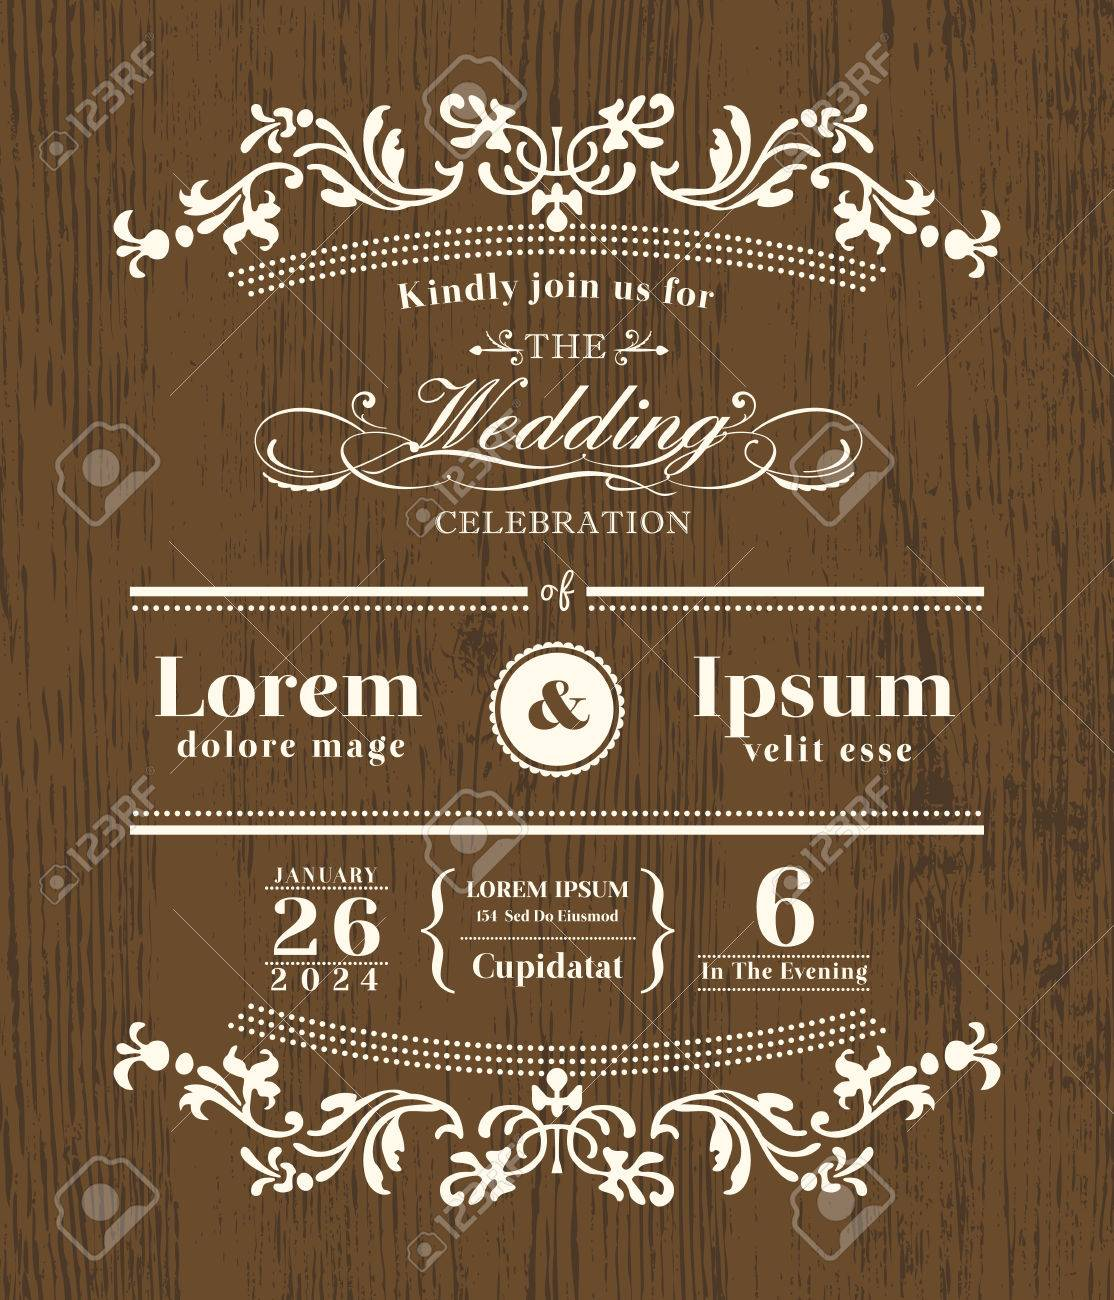 Vintage Typography Wedding Invitation Design Template On Wooden ...